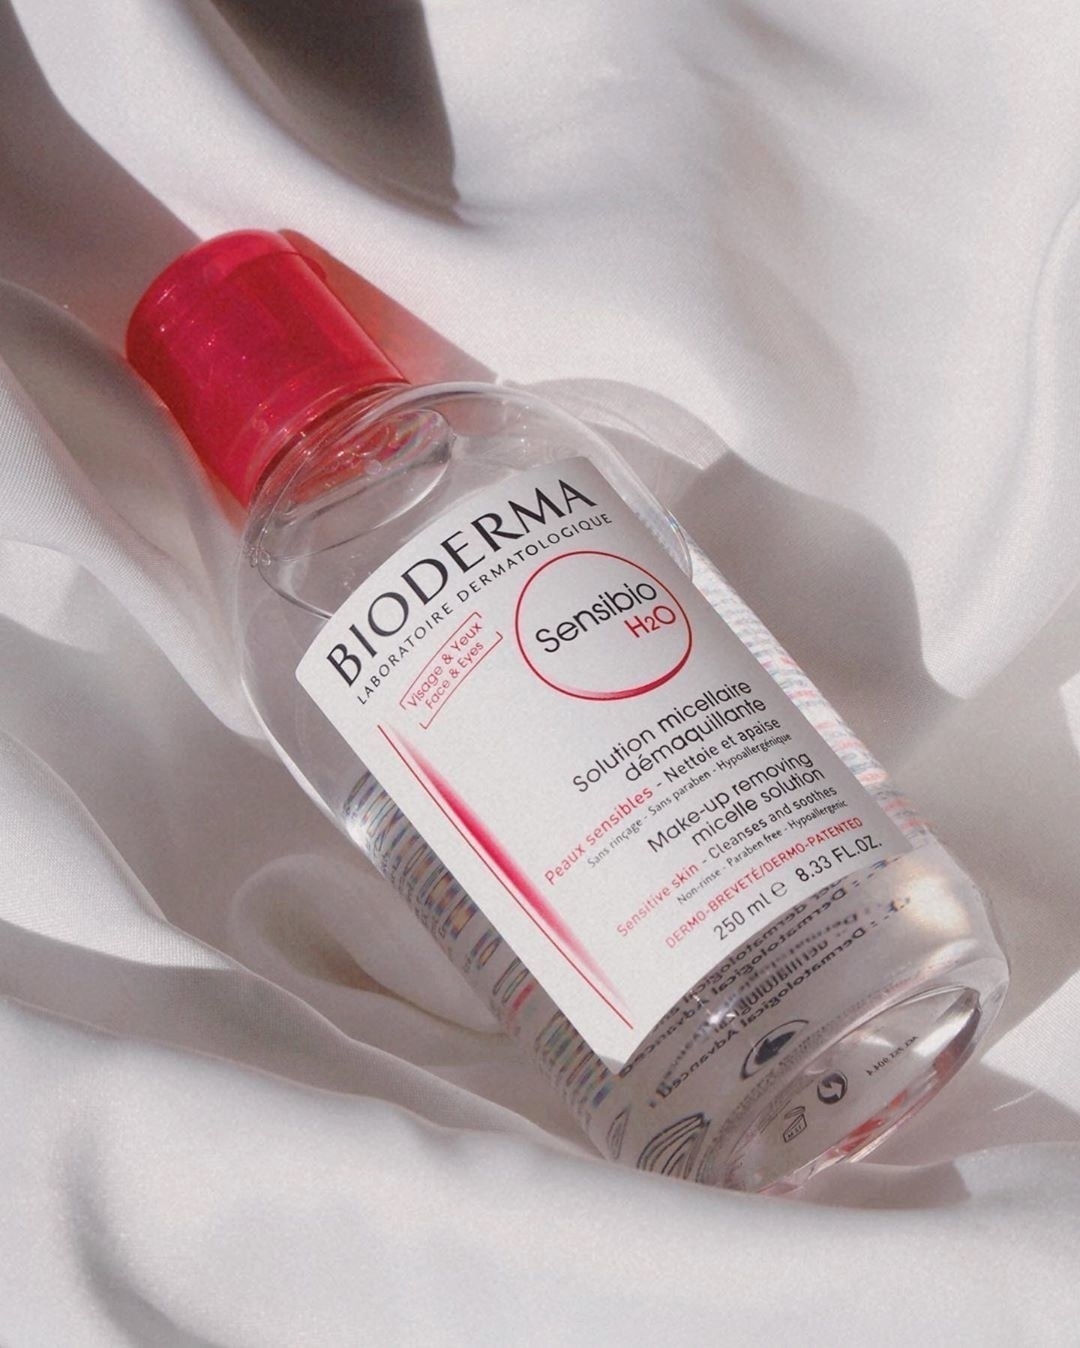 Clear bottle of Bioderma cleansing water on a white pillow